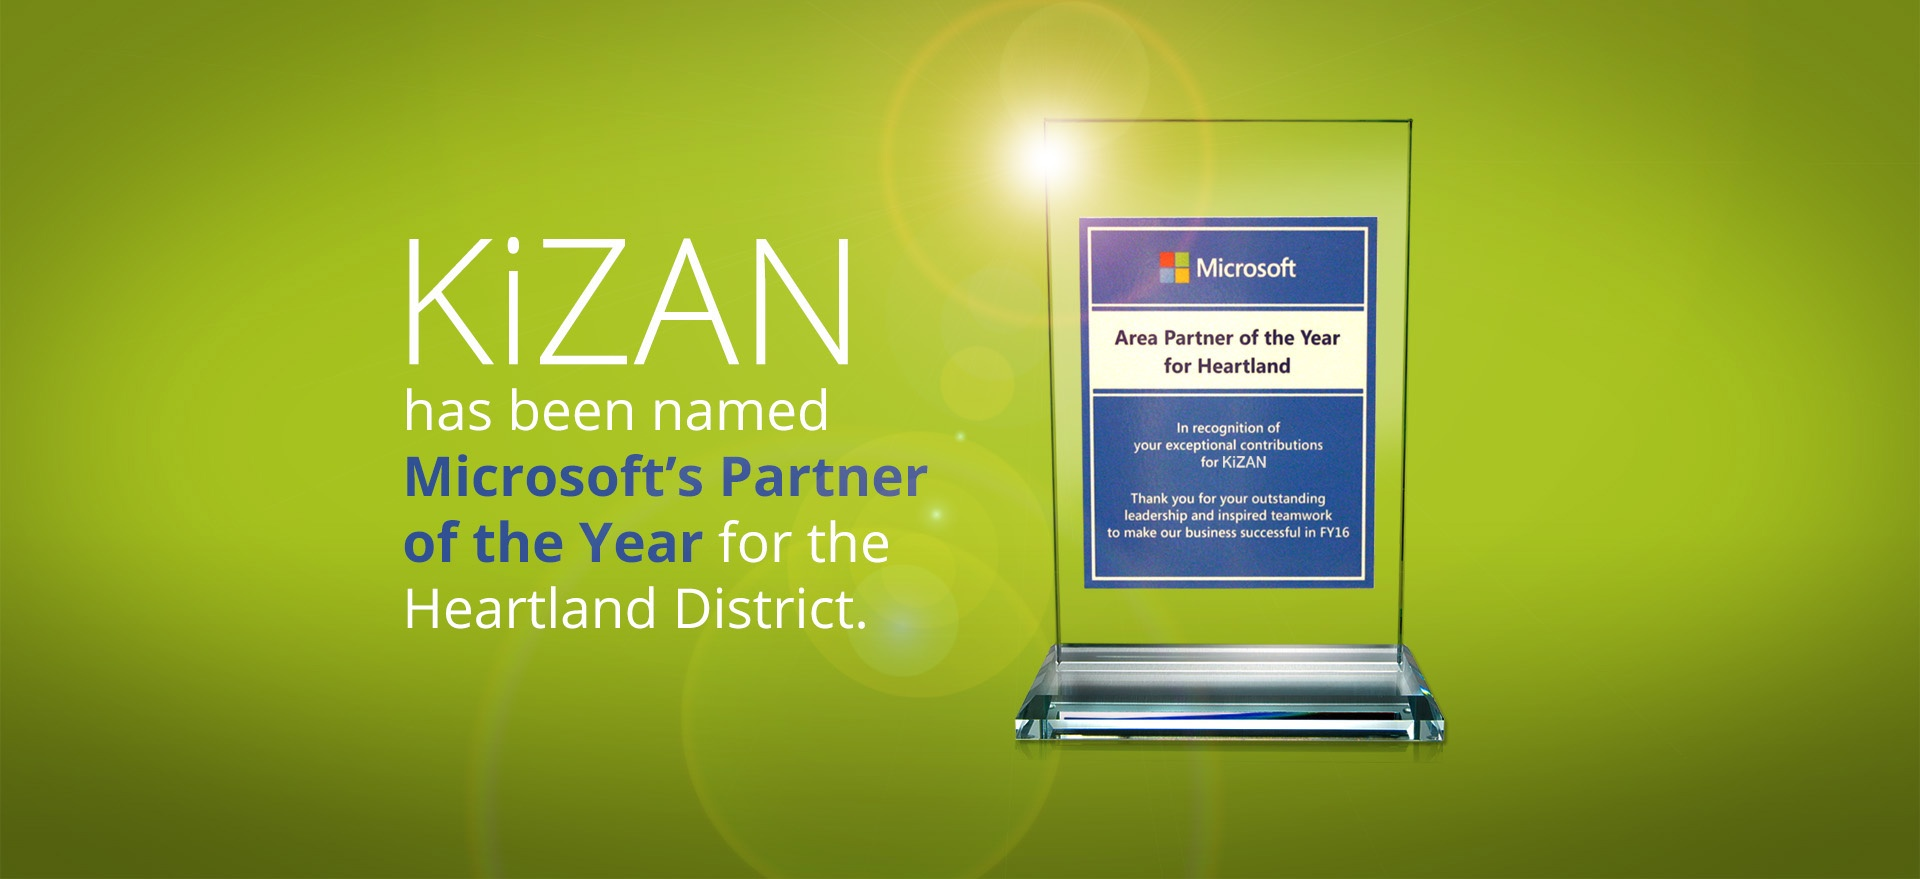 KiZAN wins Microsoft Partner of the Year Award for the Heartland